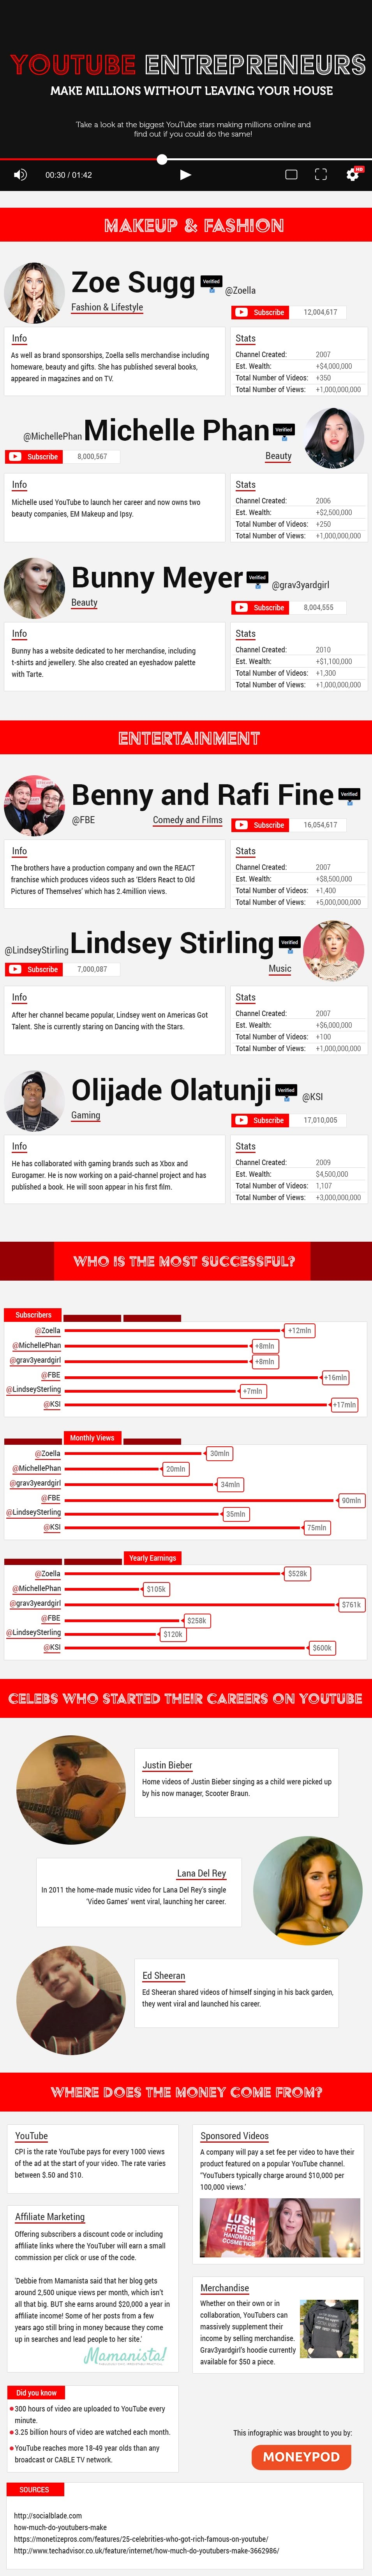 Youtube Entrepreneurs: Making Millions Without Leaving Your Home #Infographic